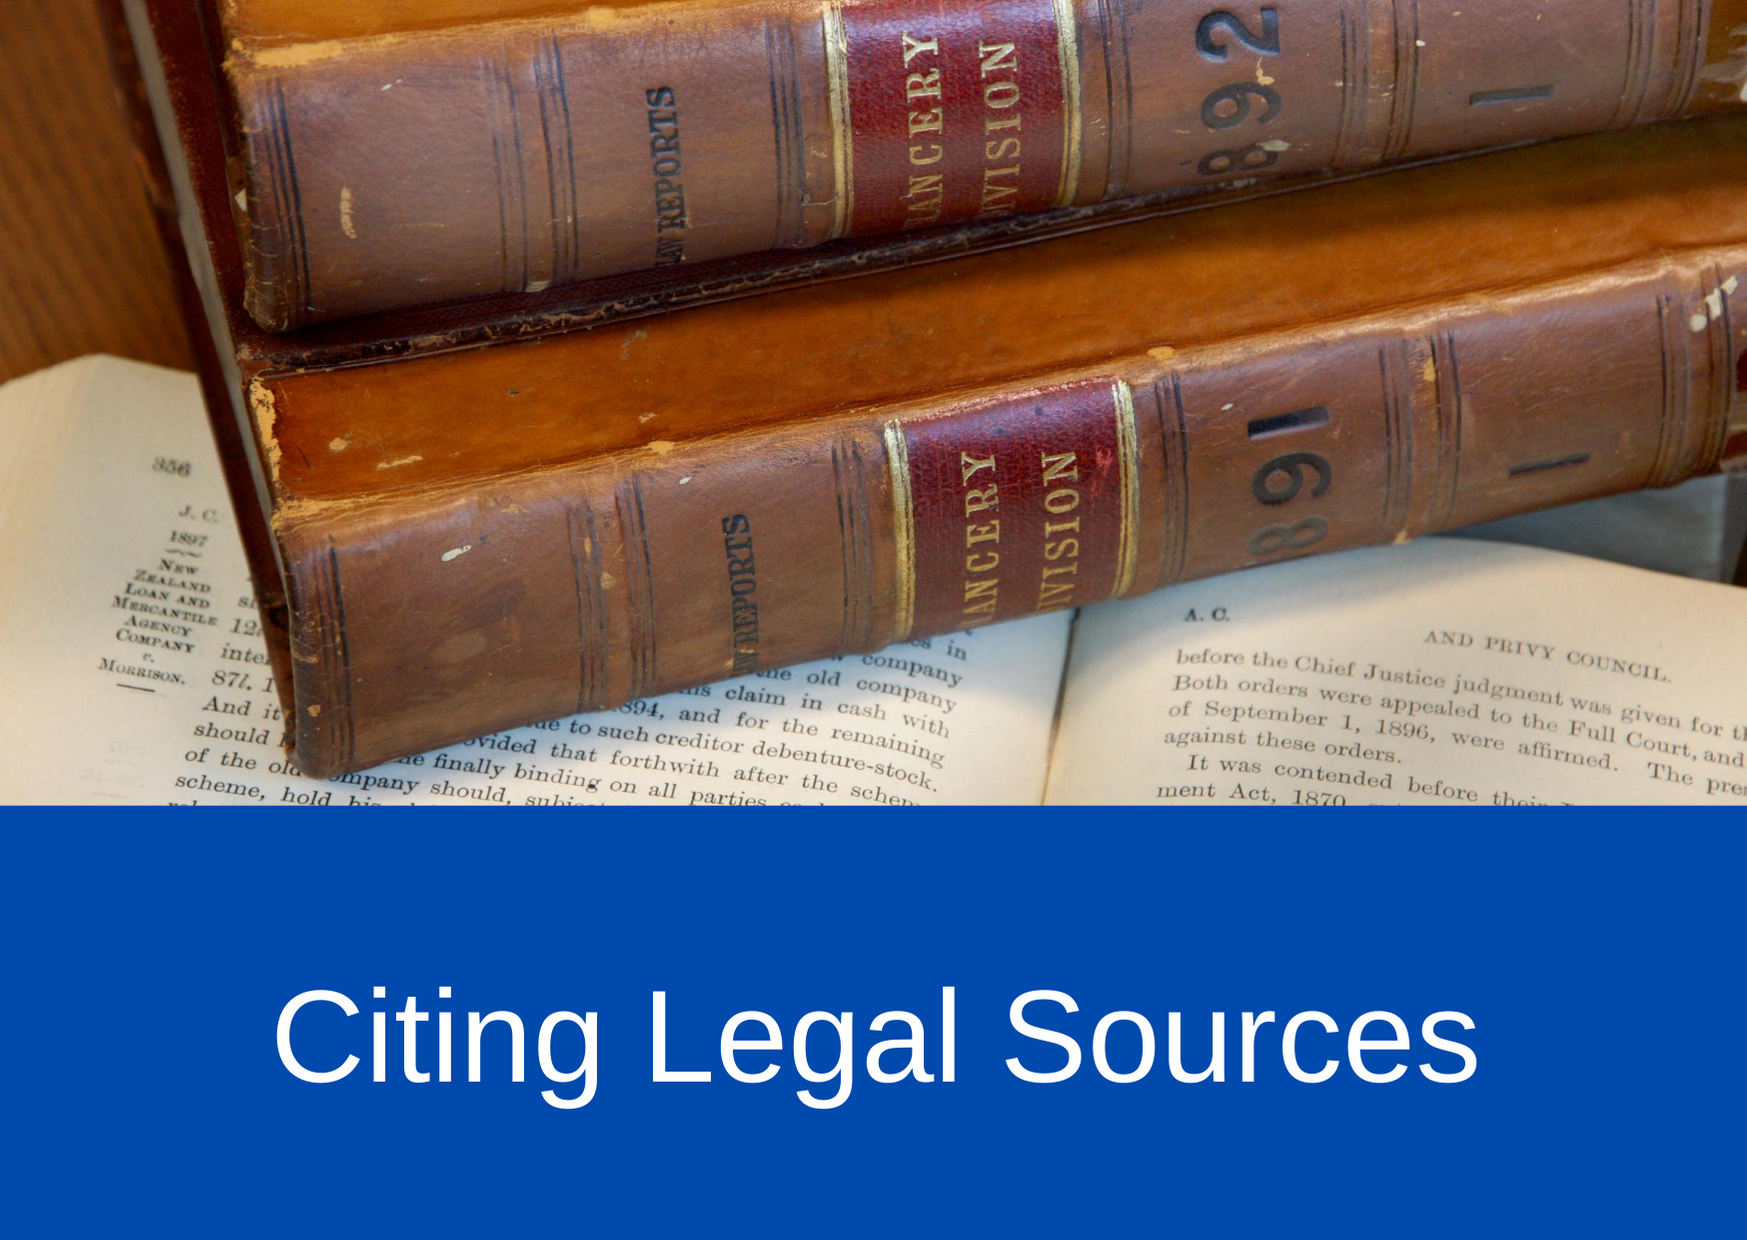 Citing Legal Sources